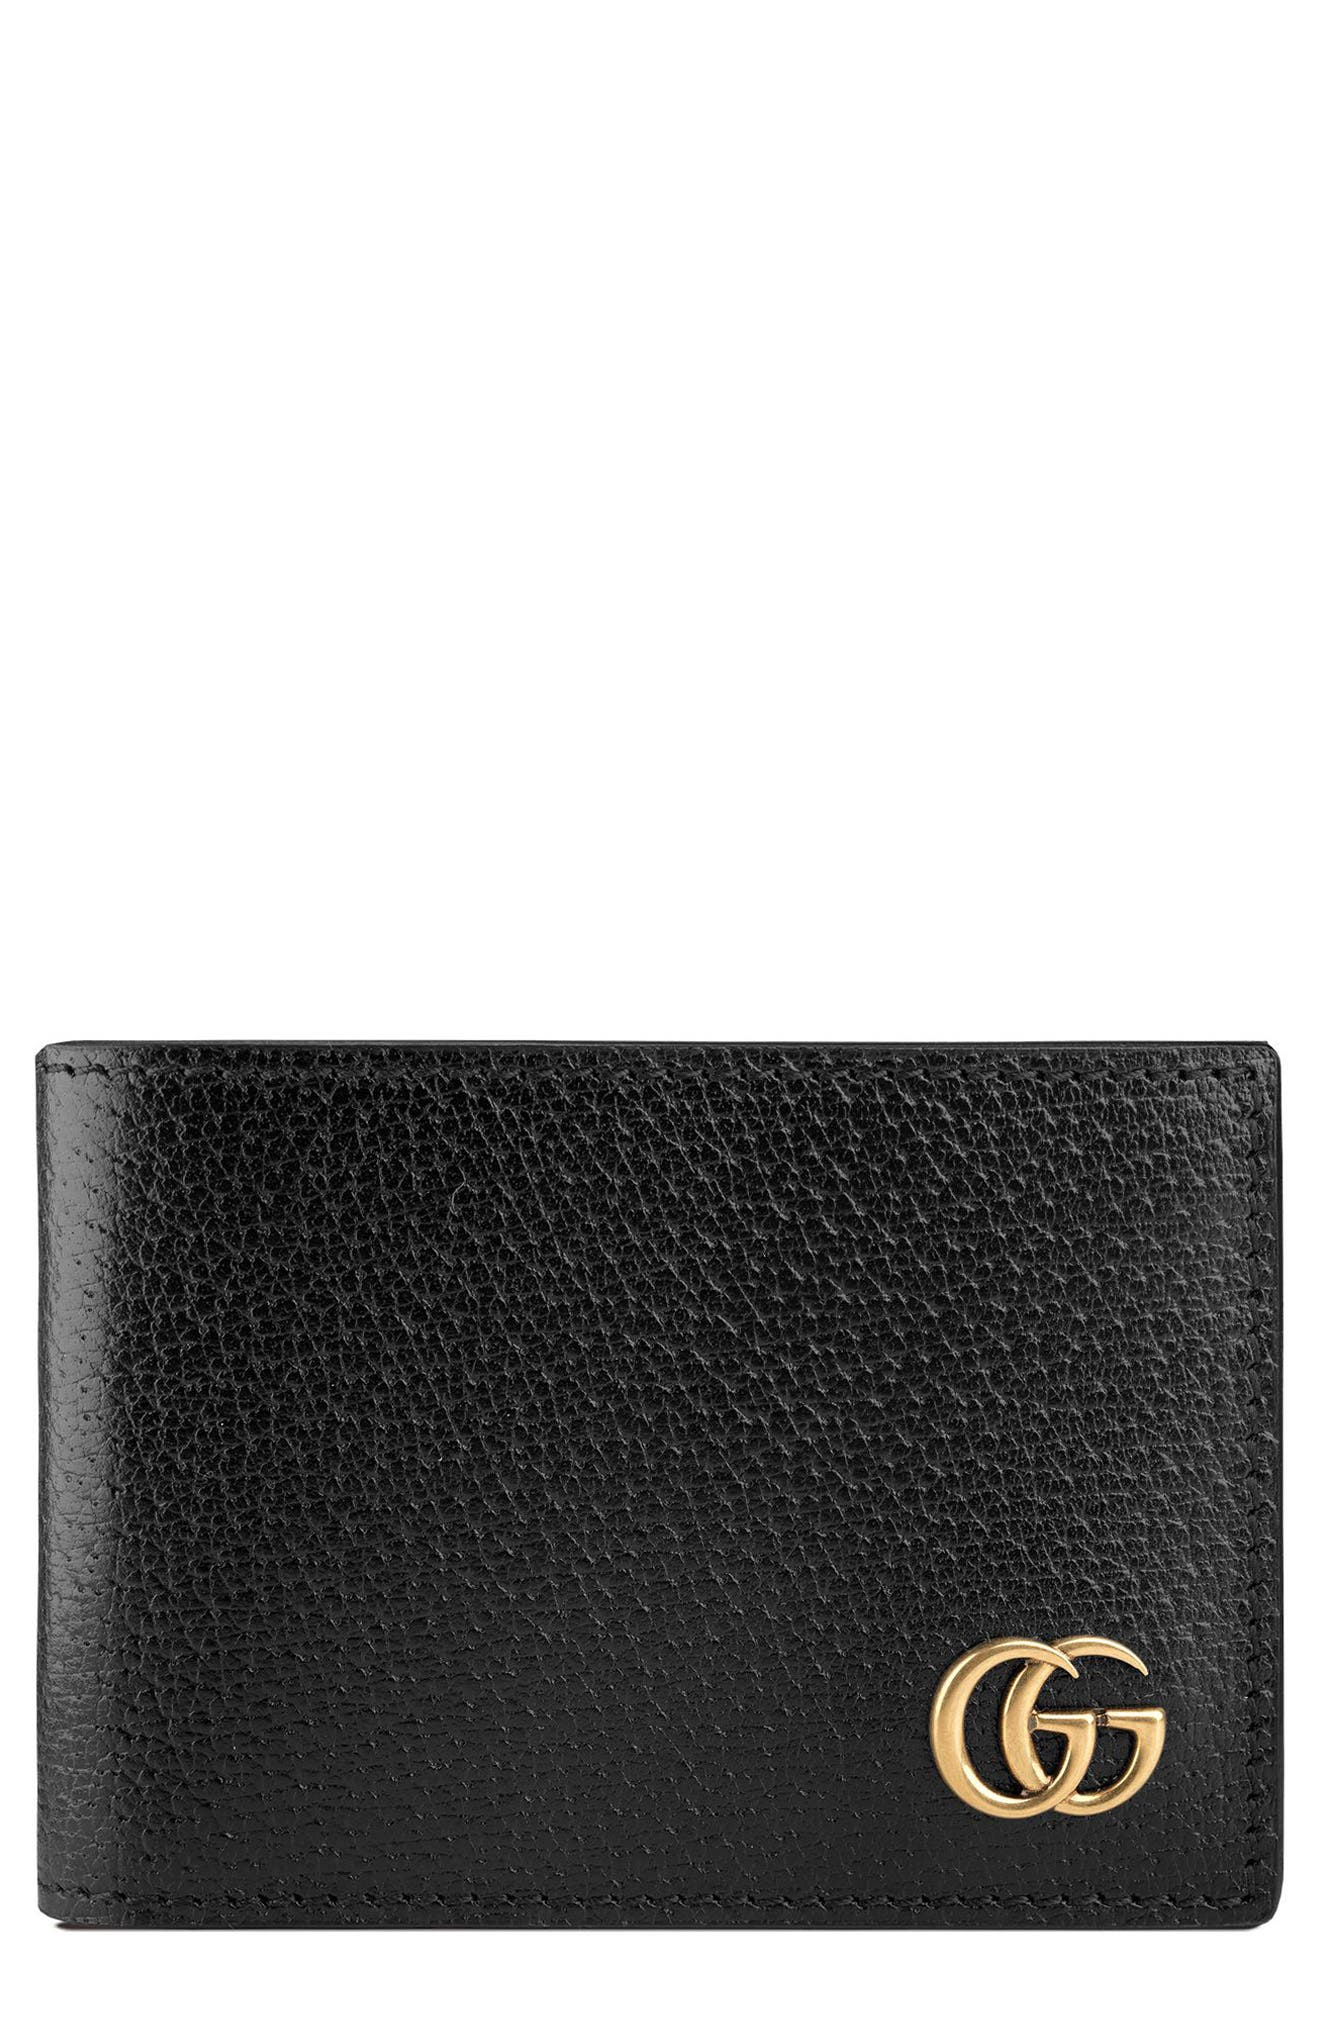 Marmont Leather Wallet,                             Alternate thumbnail 3, color,